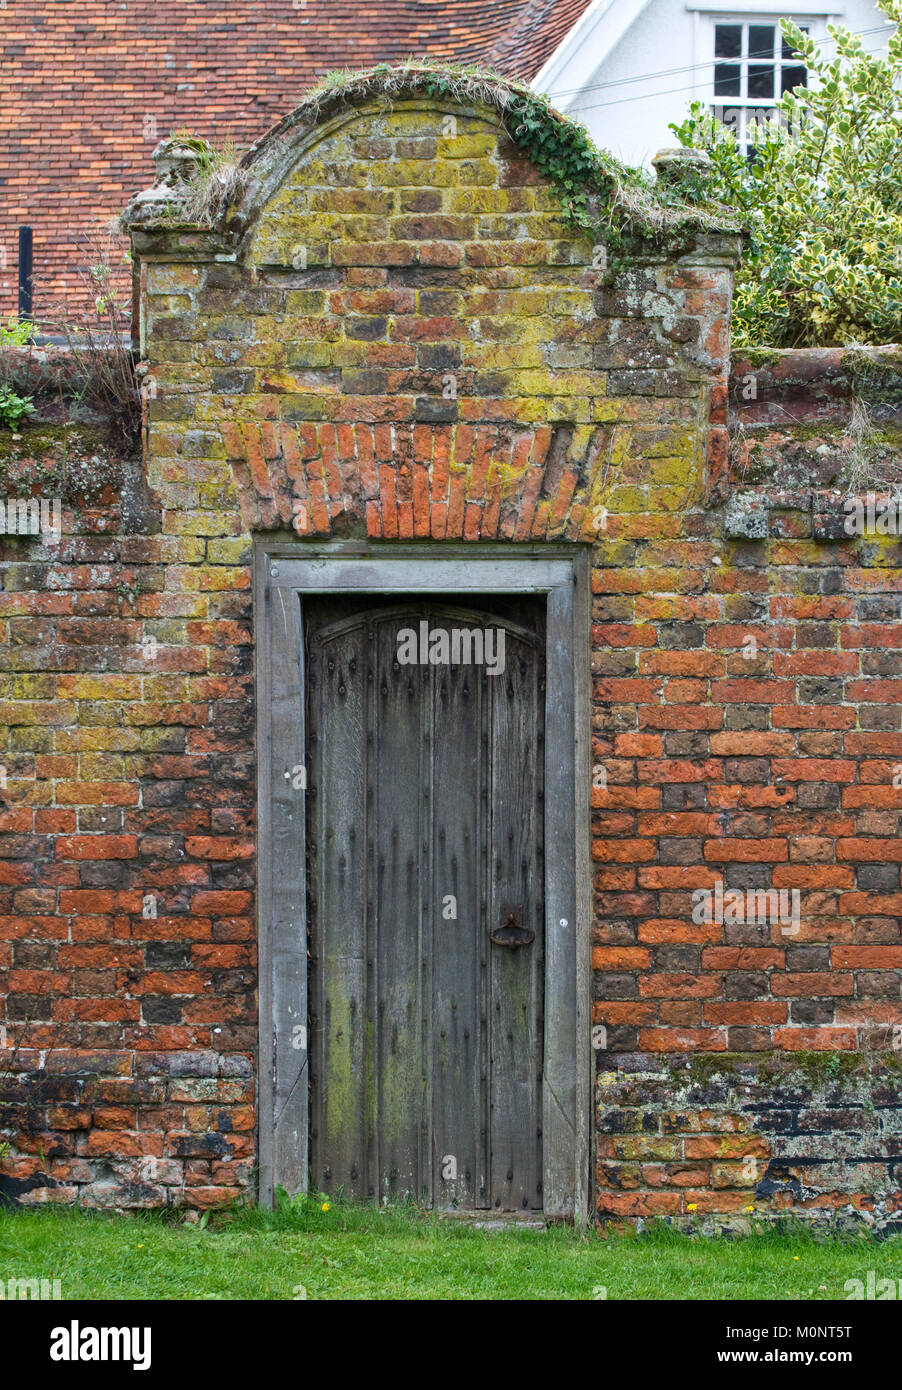 Period wooden door in a red brick garden wall - Stock Image